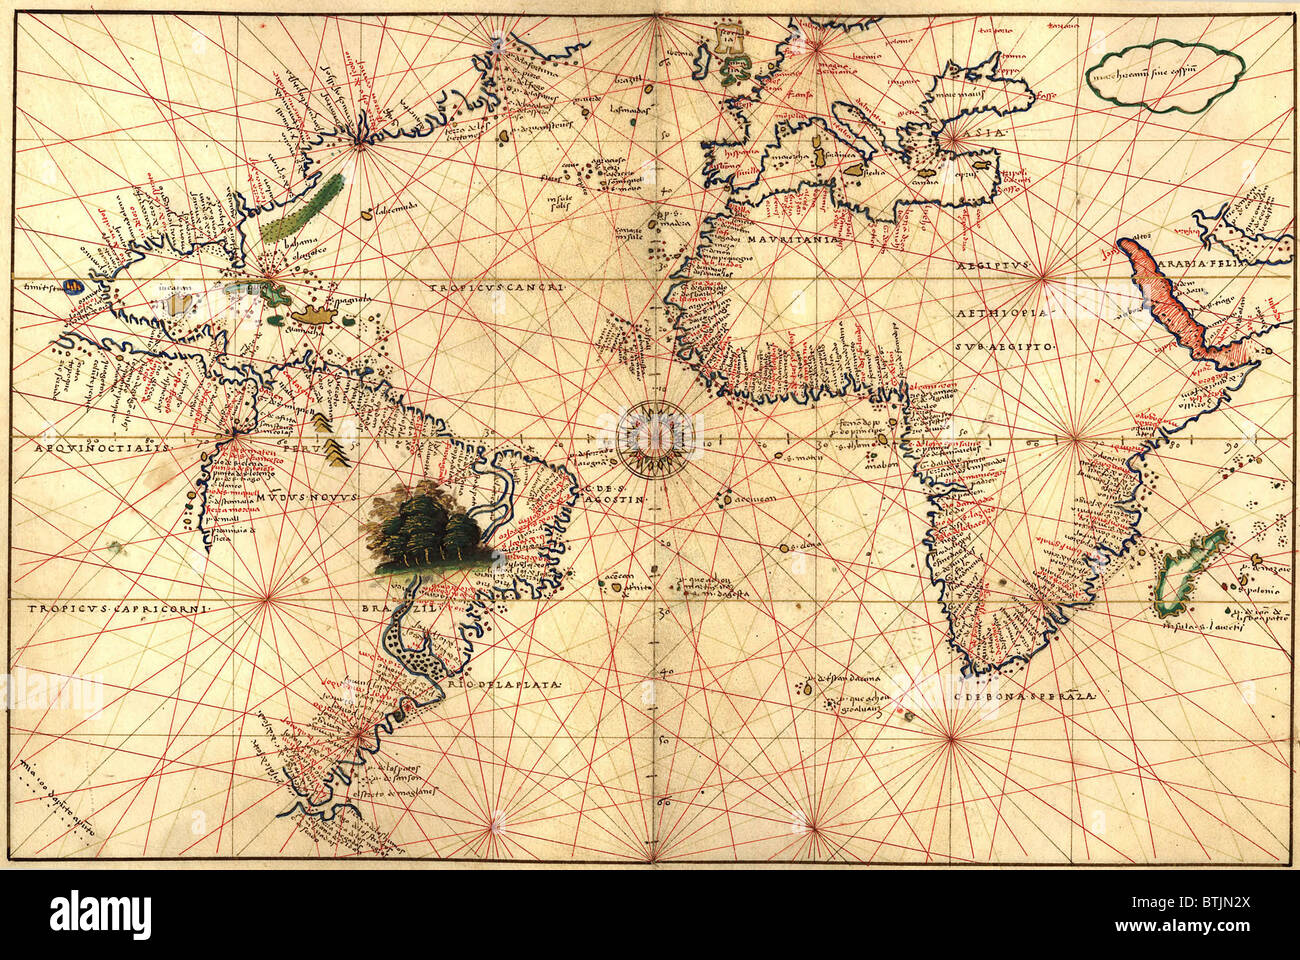 Map europe 16th century stock photos map europe 16th century stock 1544 nautical map of the atlantic ocean showing eastern north atlantic caribbean south gumiabroncs Image collections